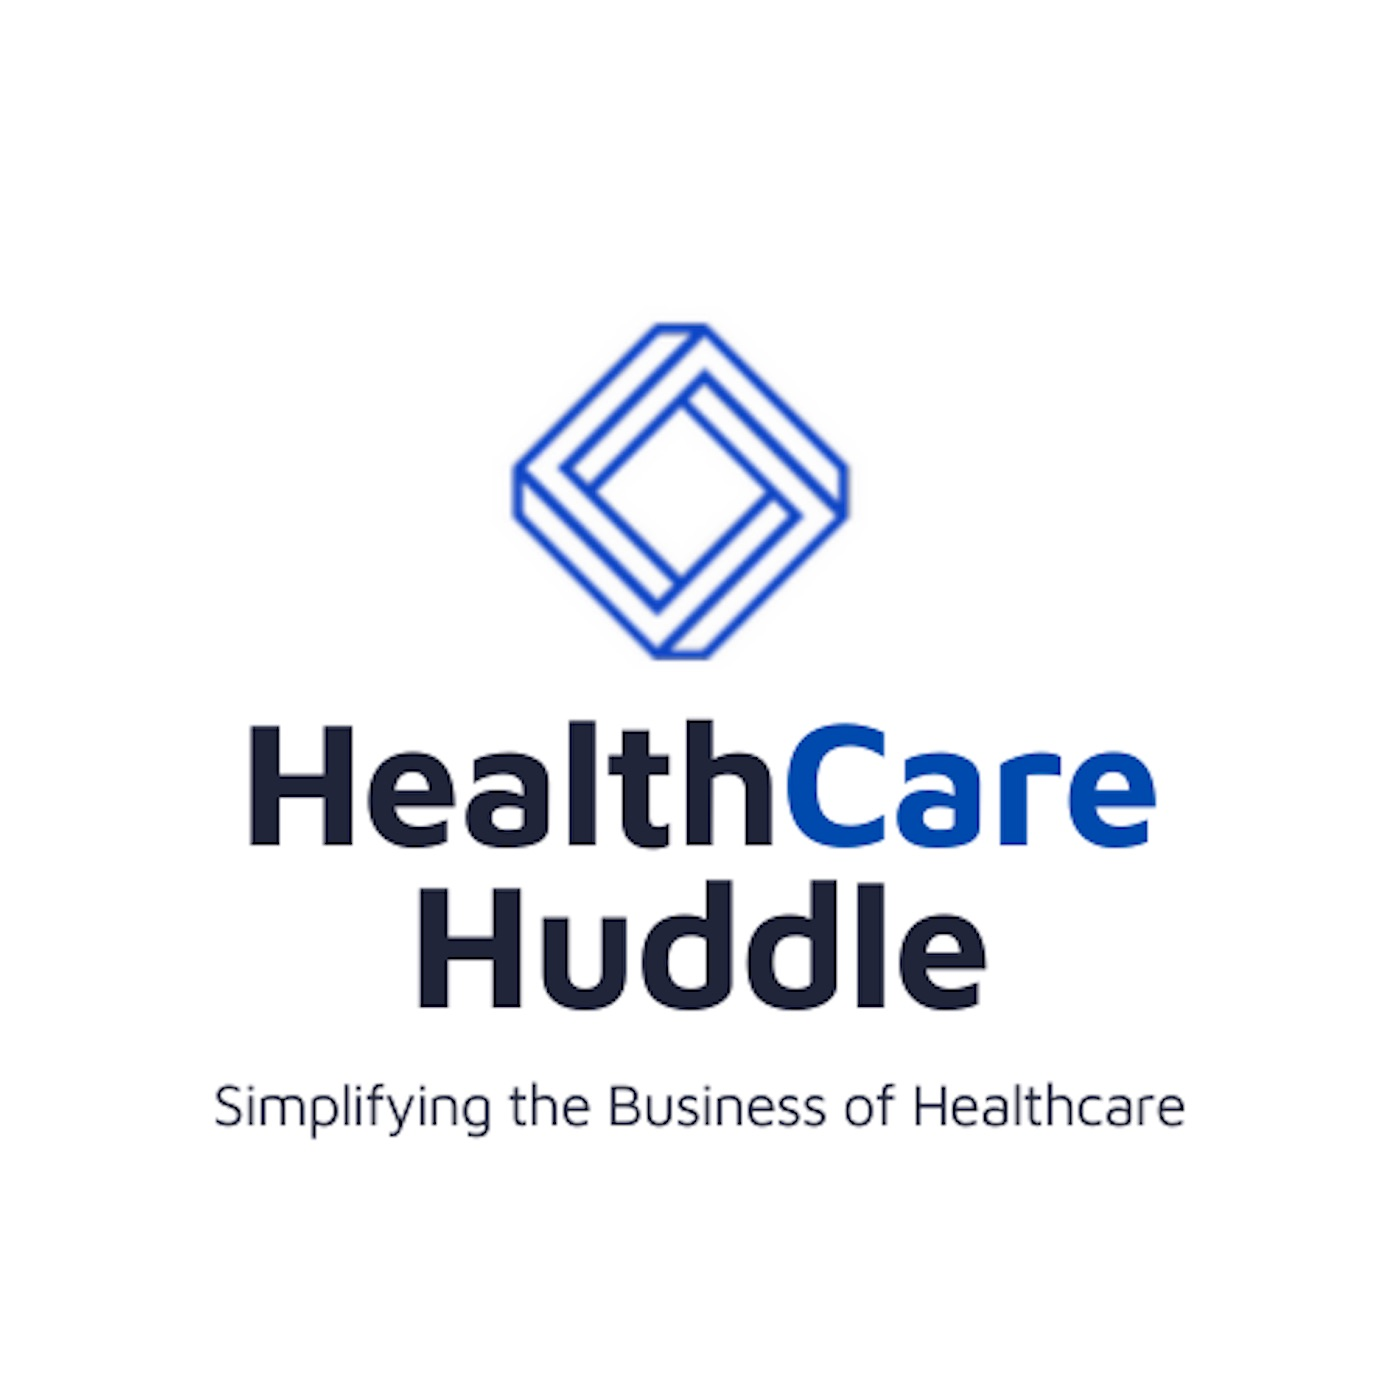 HealthCare Huddle